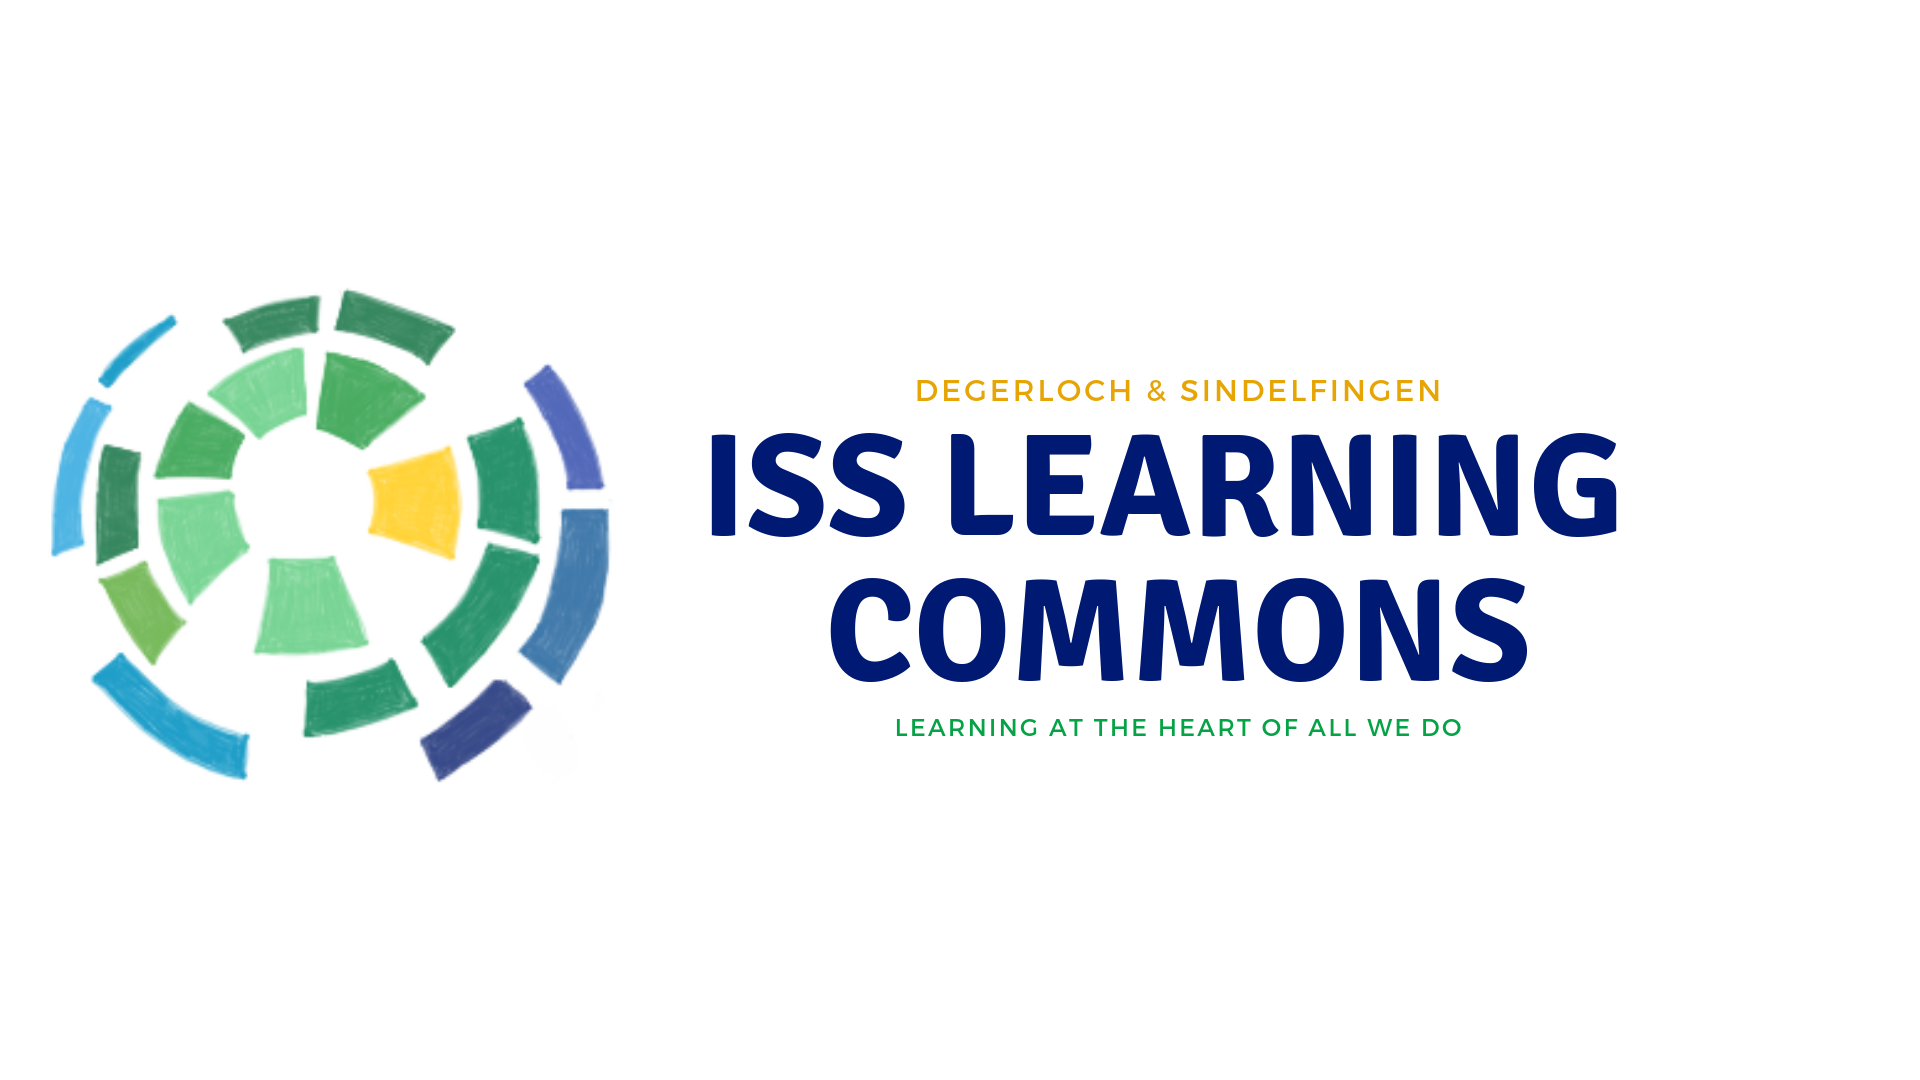 ISS Learning Commons